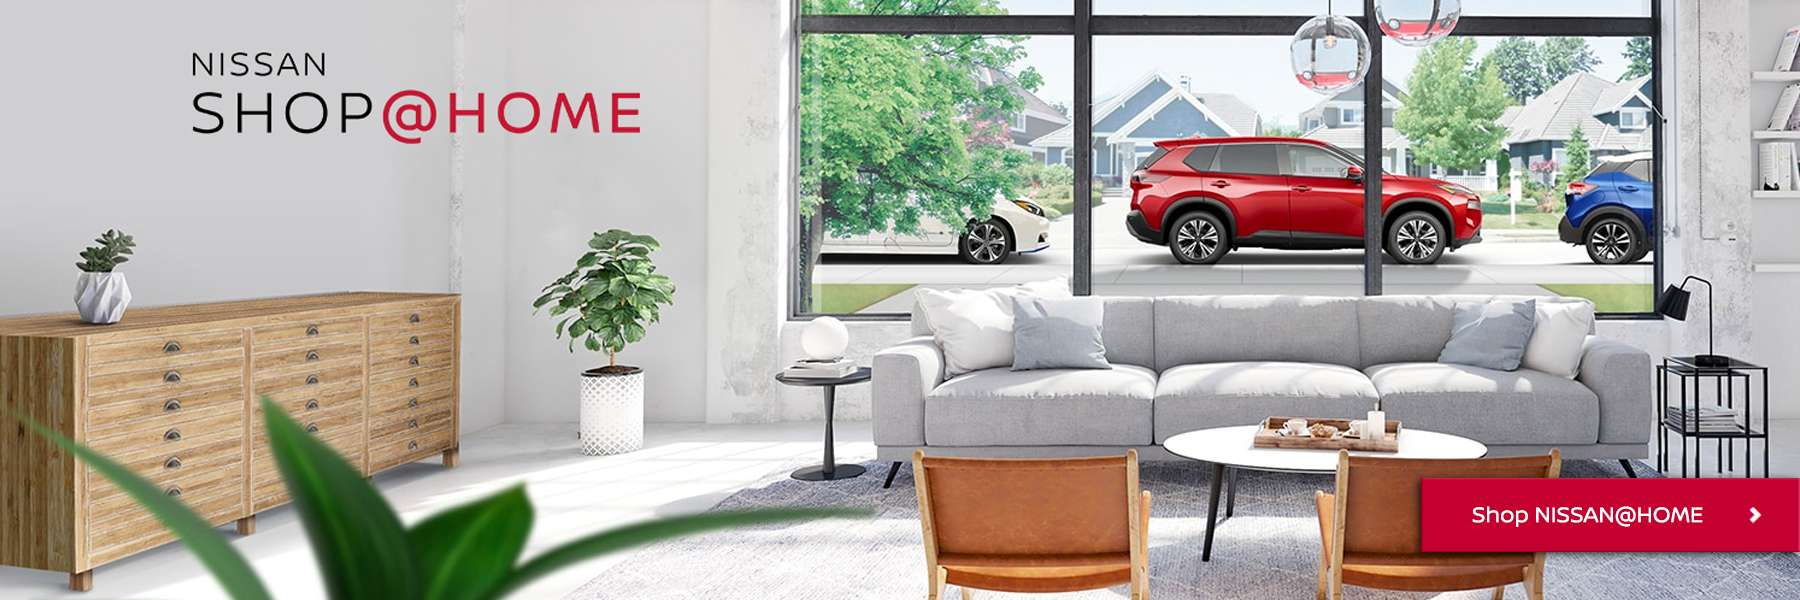 Nissan Shop @Home with Kelly Nissan of Lynnfield